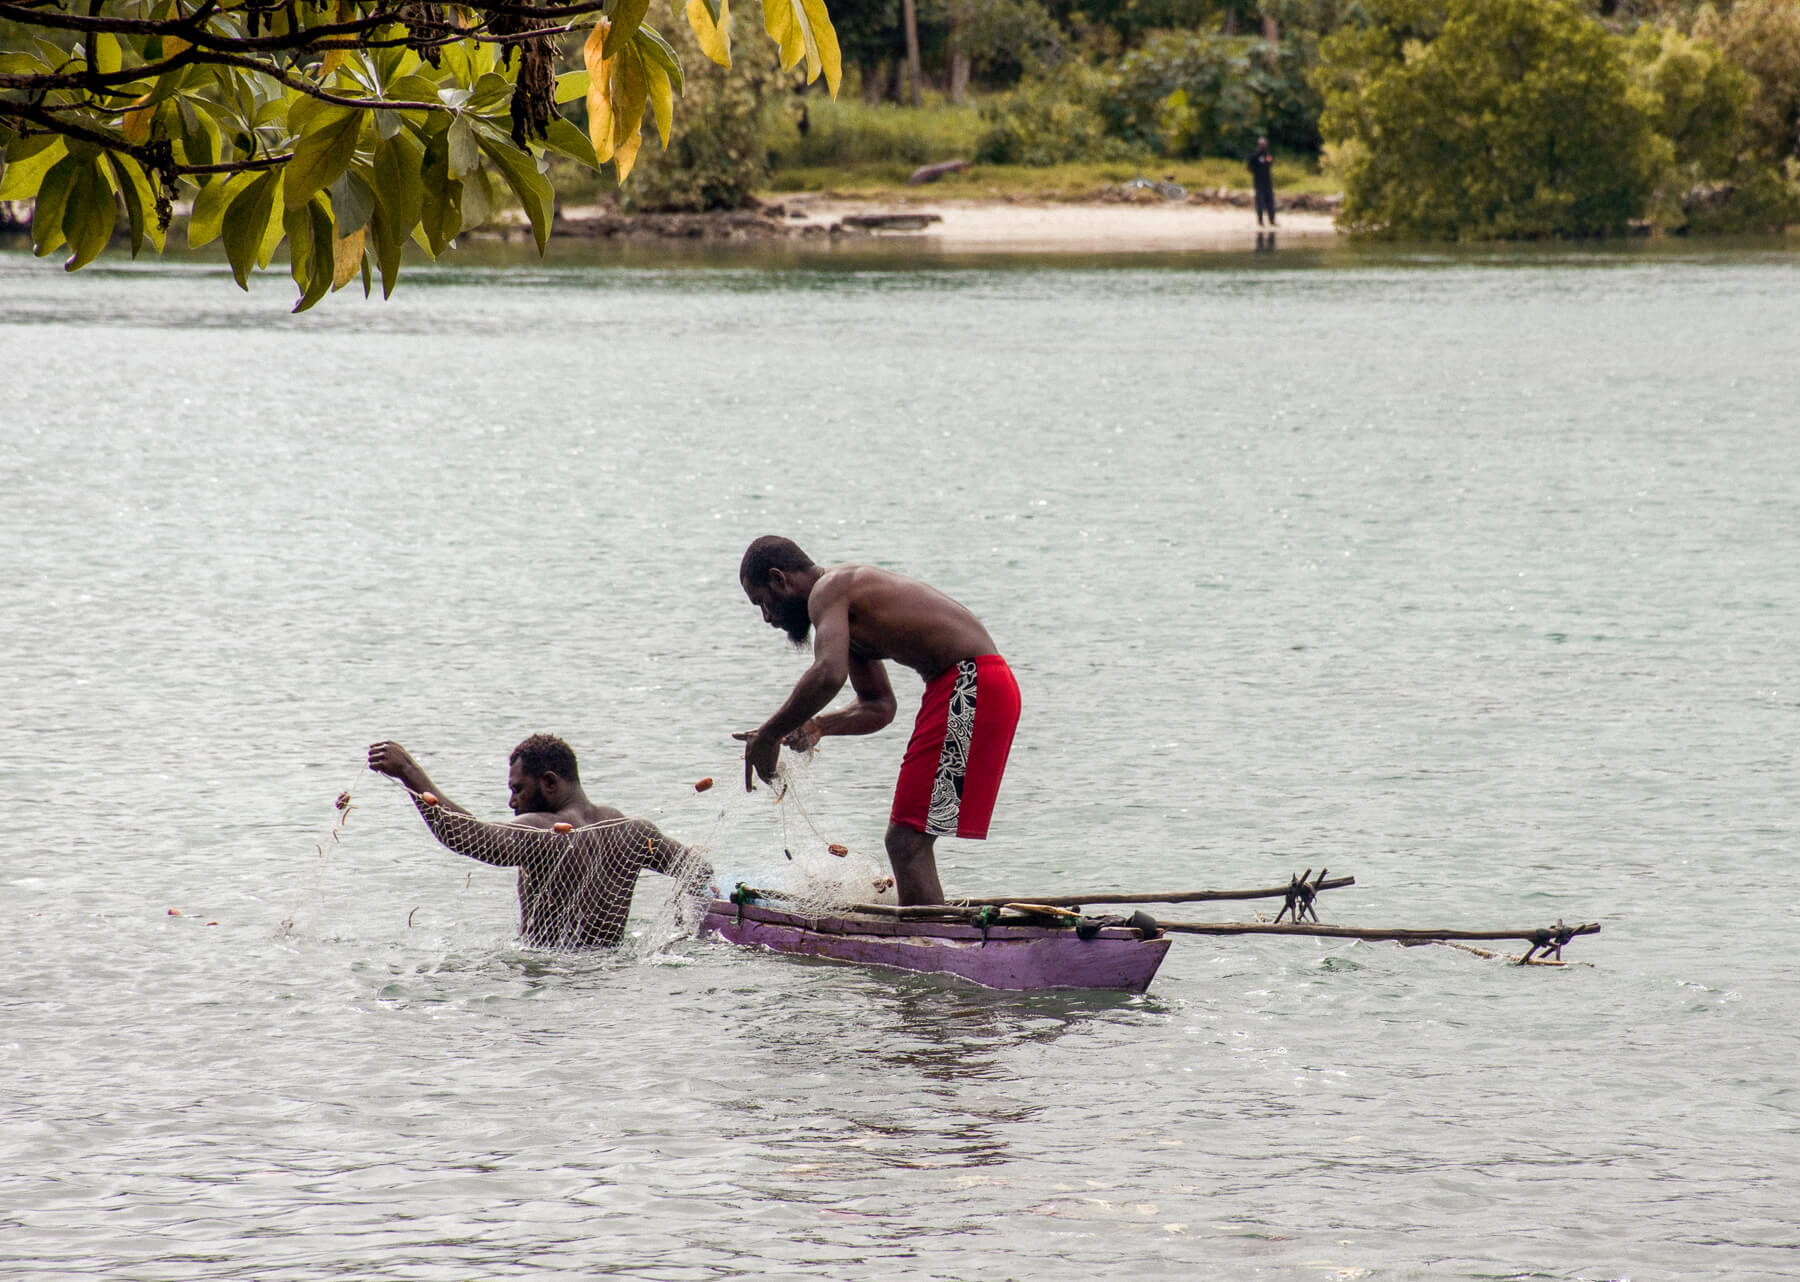 2 local vanuatu people on a traditional canoe catching fish with a net